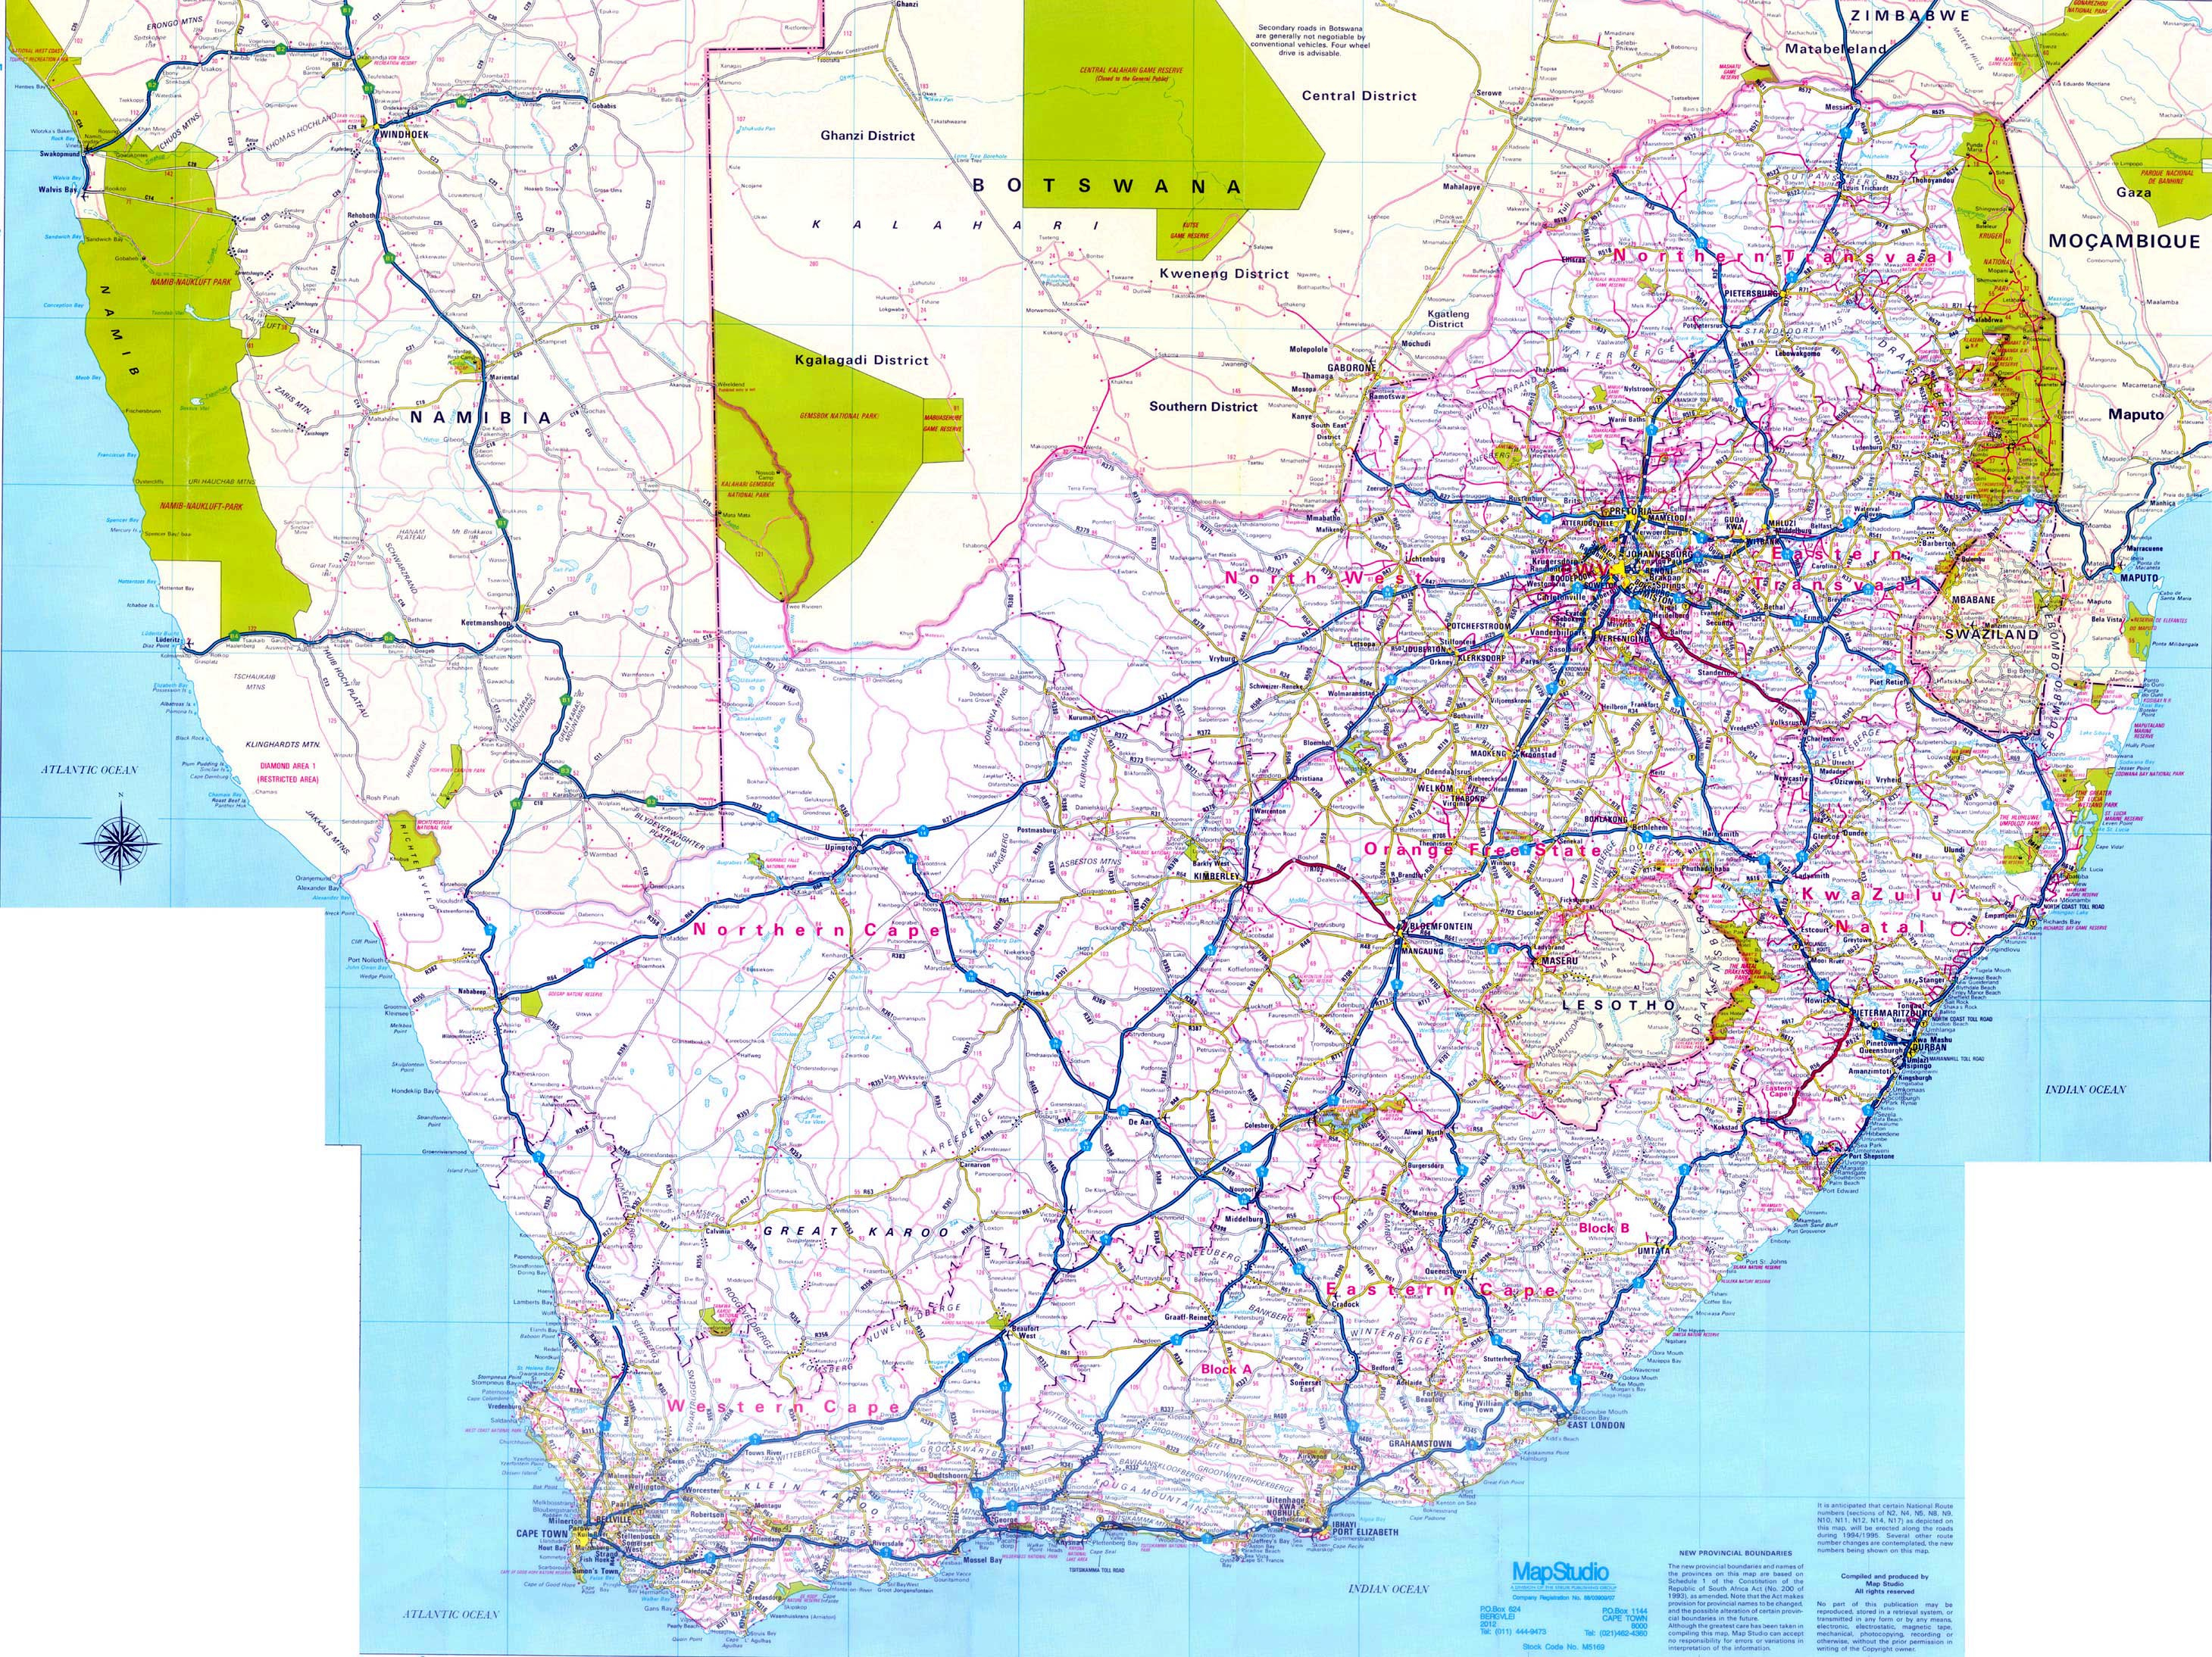 South Africa Maps | Printable Maps Of South Africa For Download - Printable Road Maps